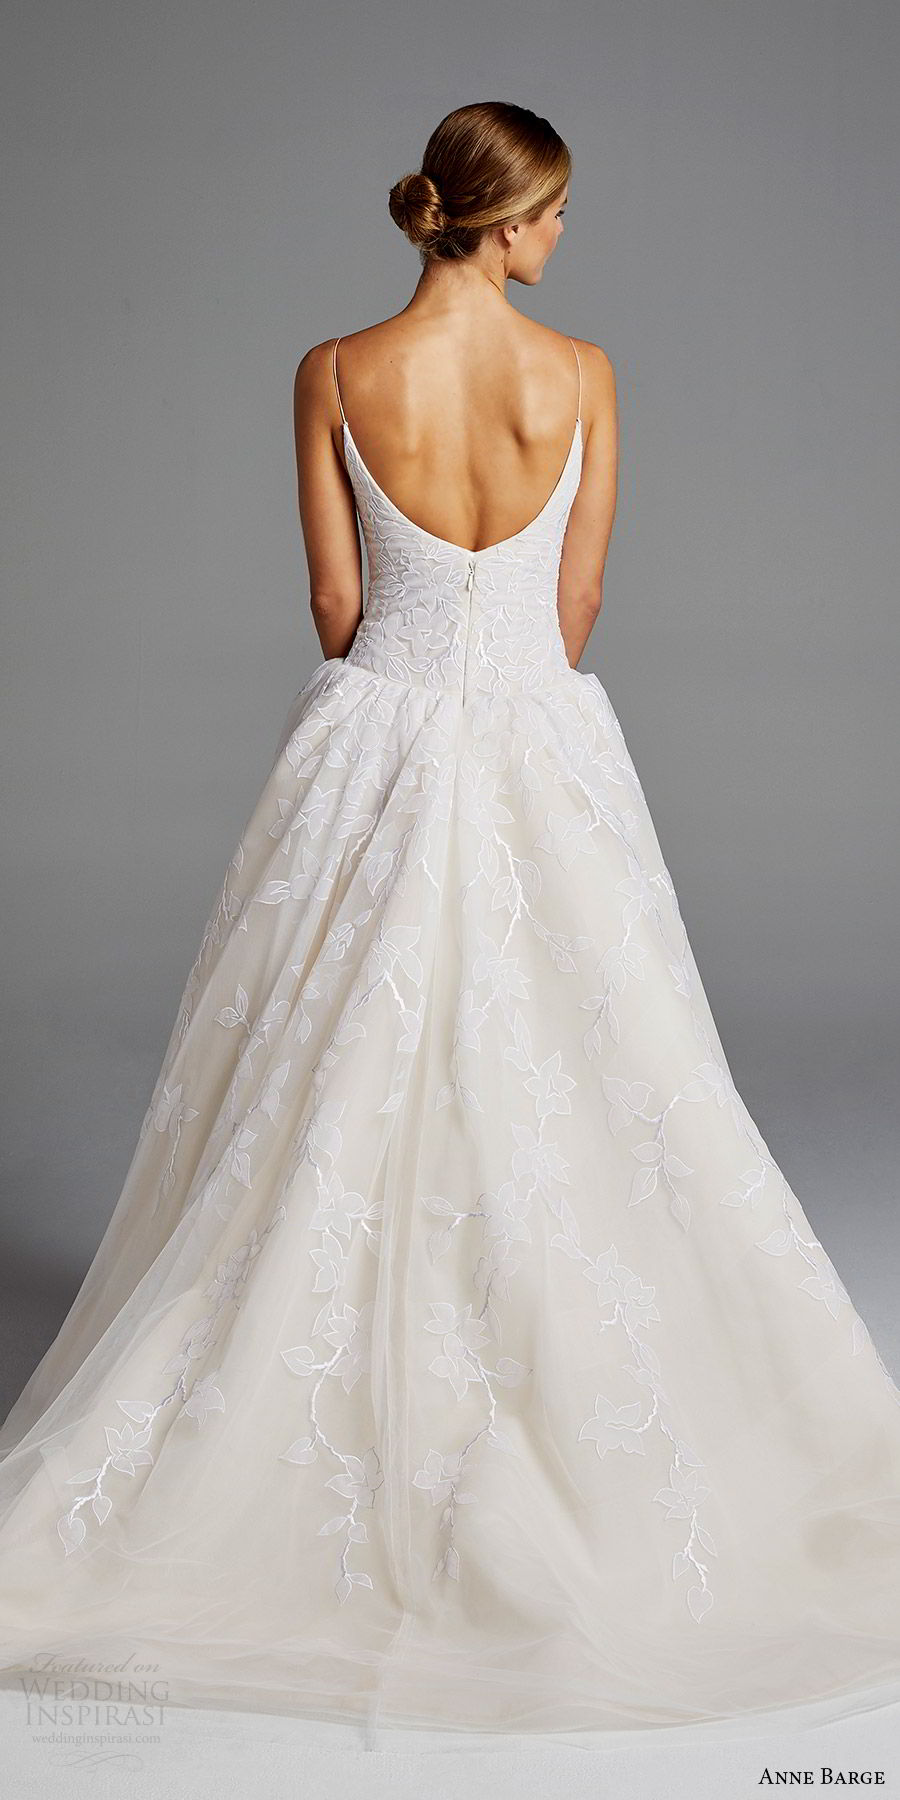 anne barge bridal spring 2019 sleeveless thin straps sweetheart drop waist lace ball gown wedding dress (maggie) bv scoop back romantic elegant